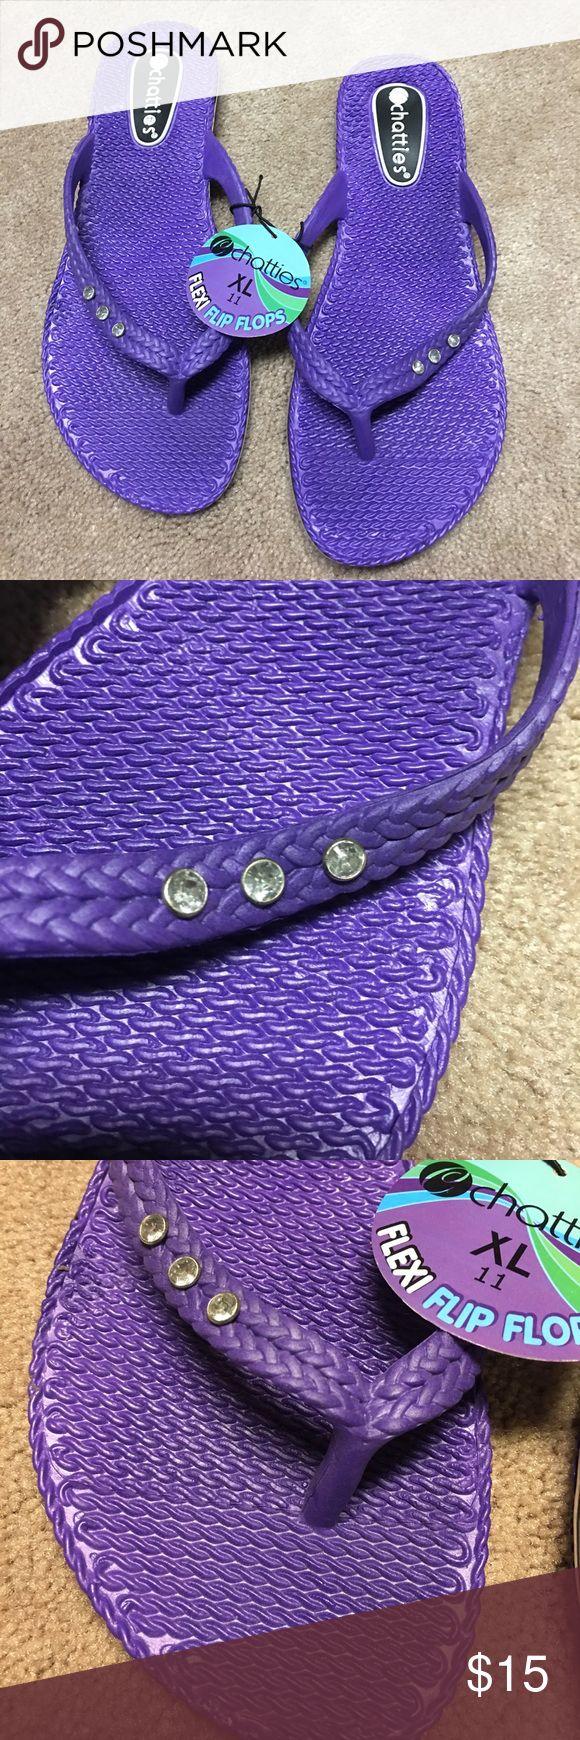 Purple rhinestone studded purple flip flops! BNWT Purple rhinestone studded purple flip flops! BNWT Smooth plastic so won't give you blisters! Get for camping, Casual wear or going out! Prefect for any occasion! Size XL (9-10) ❌No trades! Chatties Shoes Sandals